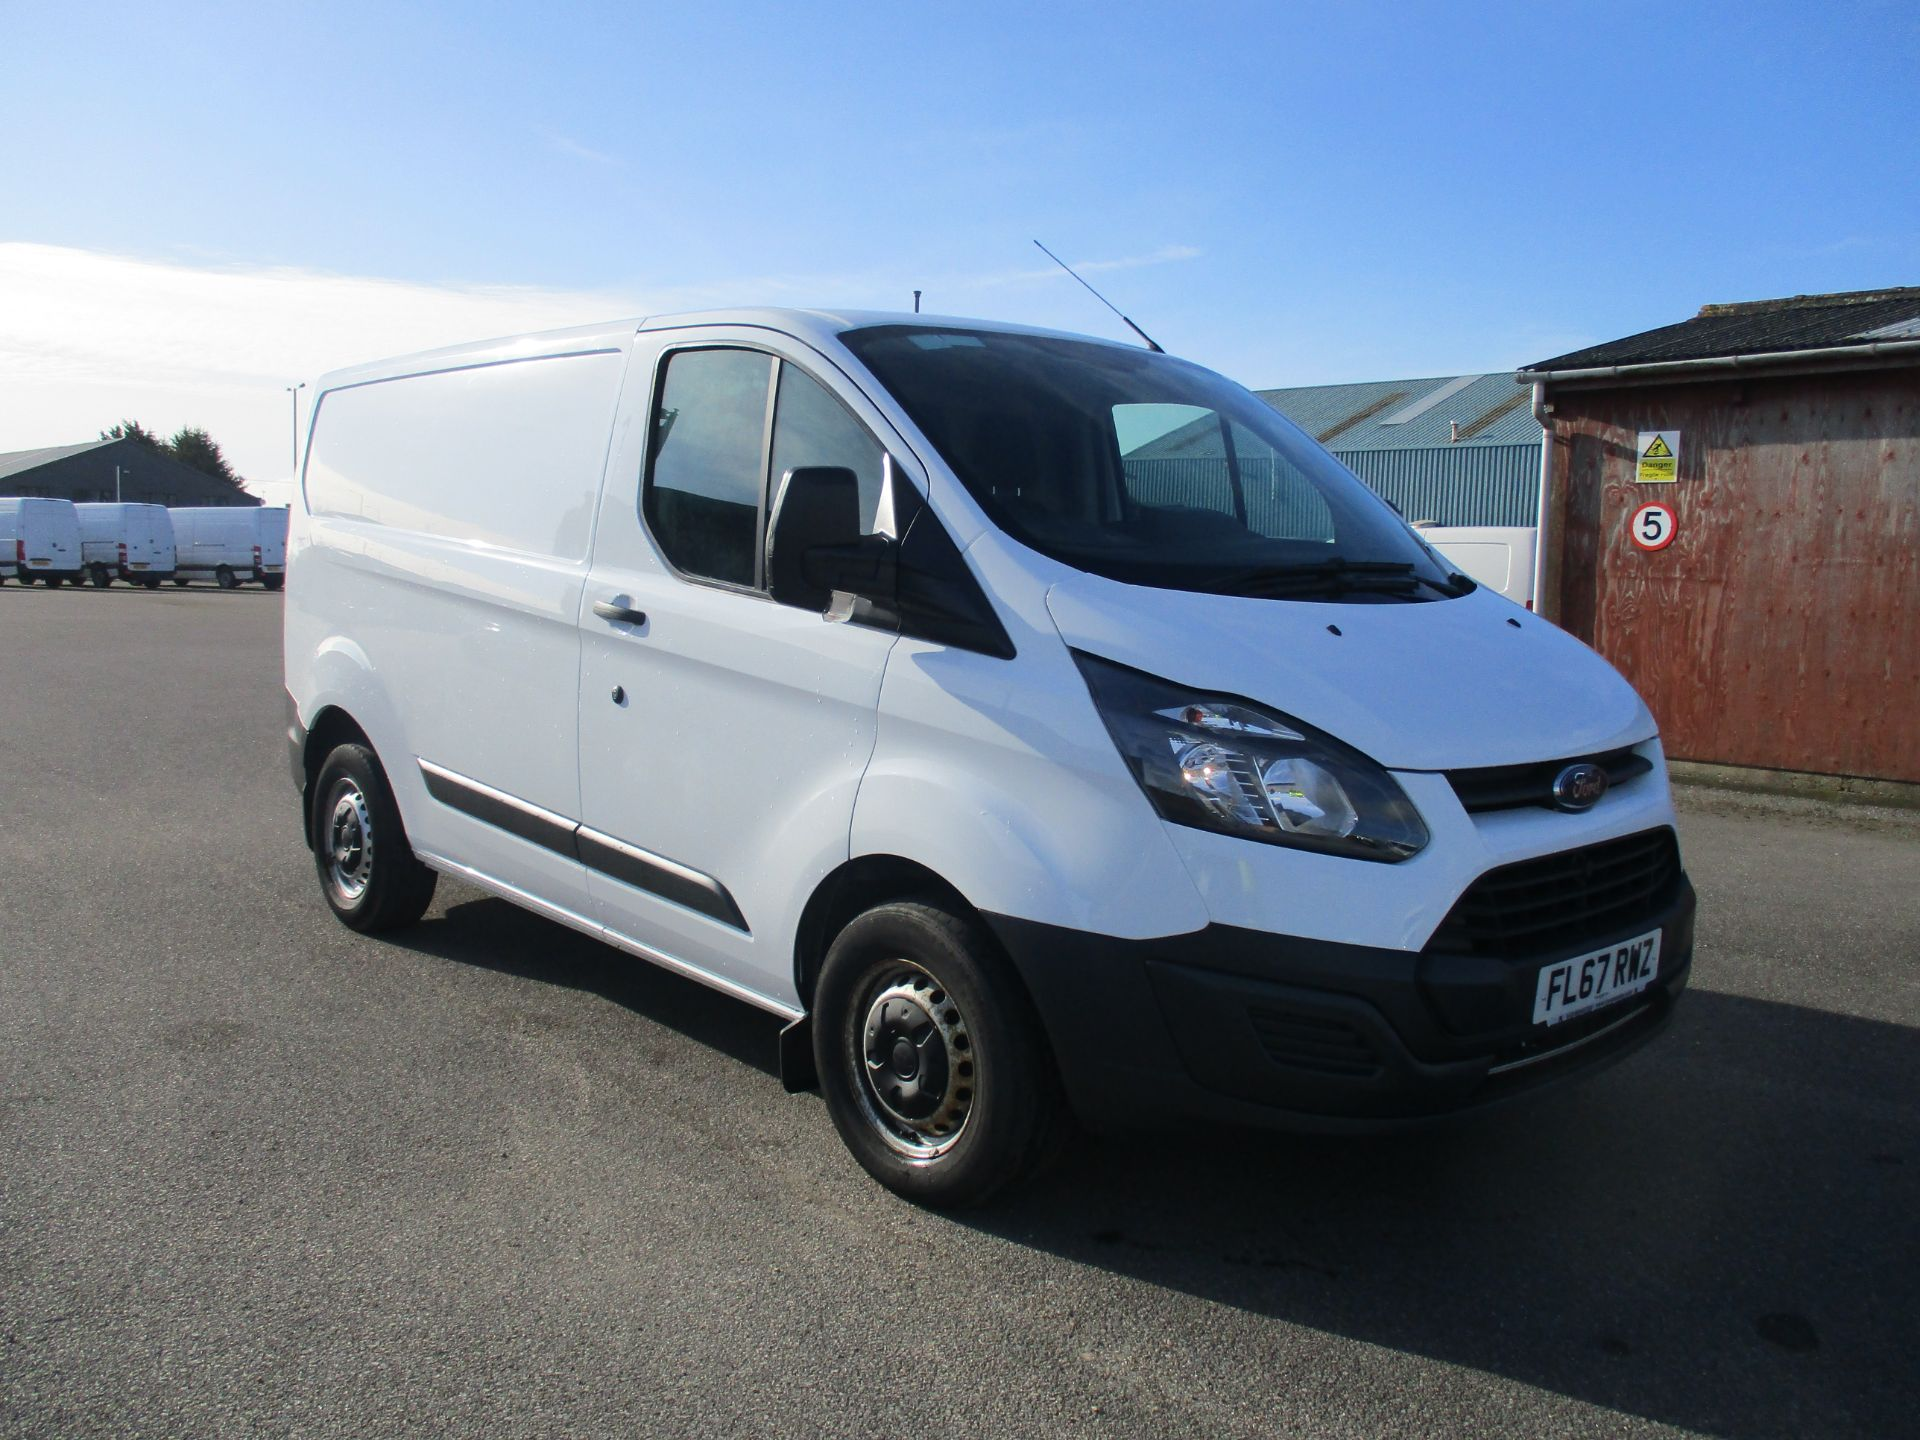 2017 Ford Transit Custom 290 L1 DIESEL FWD 2.0 TDCI 105PS LOW ROOF VAN EURO 6 (FL67RWZ)